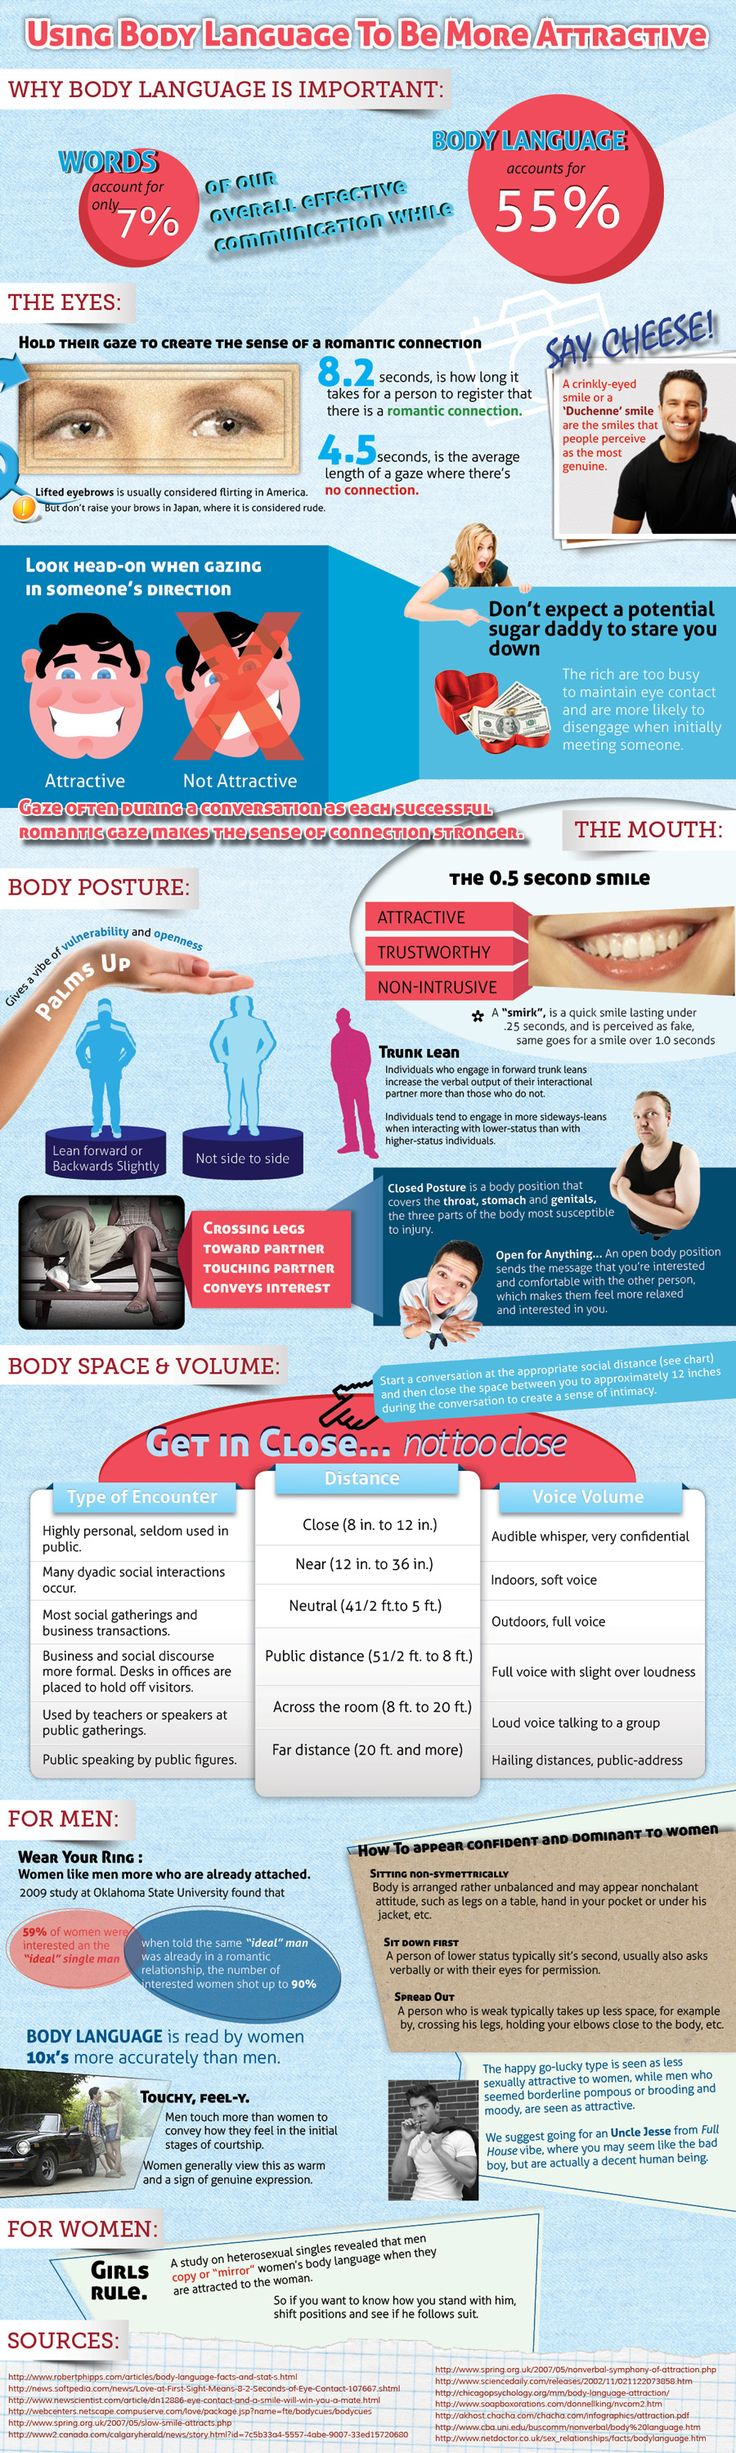 Using Body Language To Be More Attractive is an infographic to give viewers tips, examples, and statistics on how to use their body language correctly